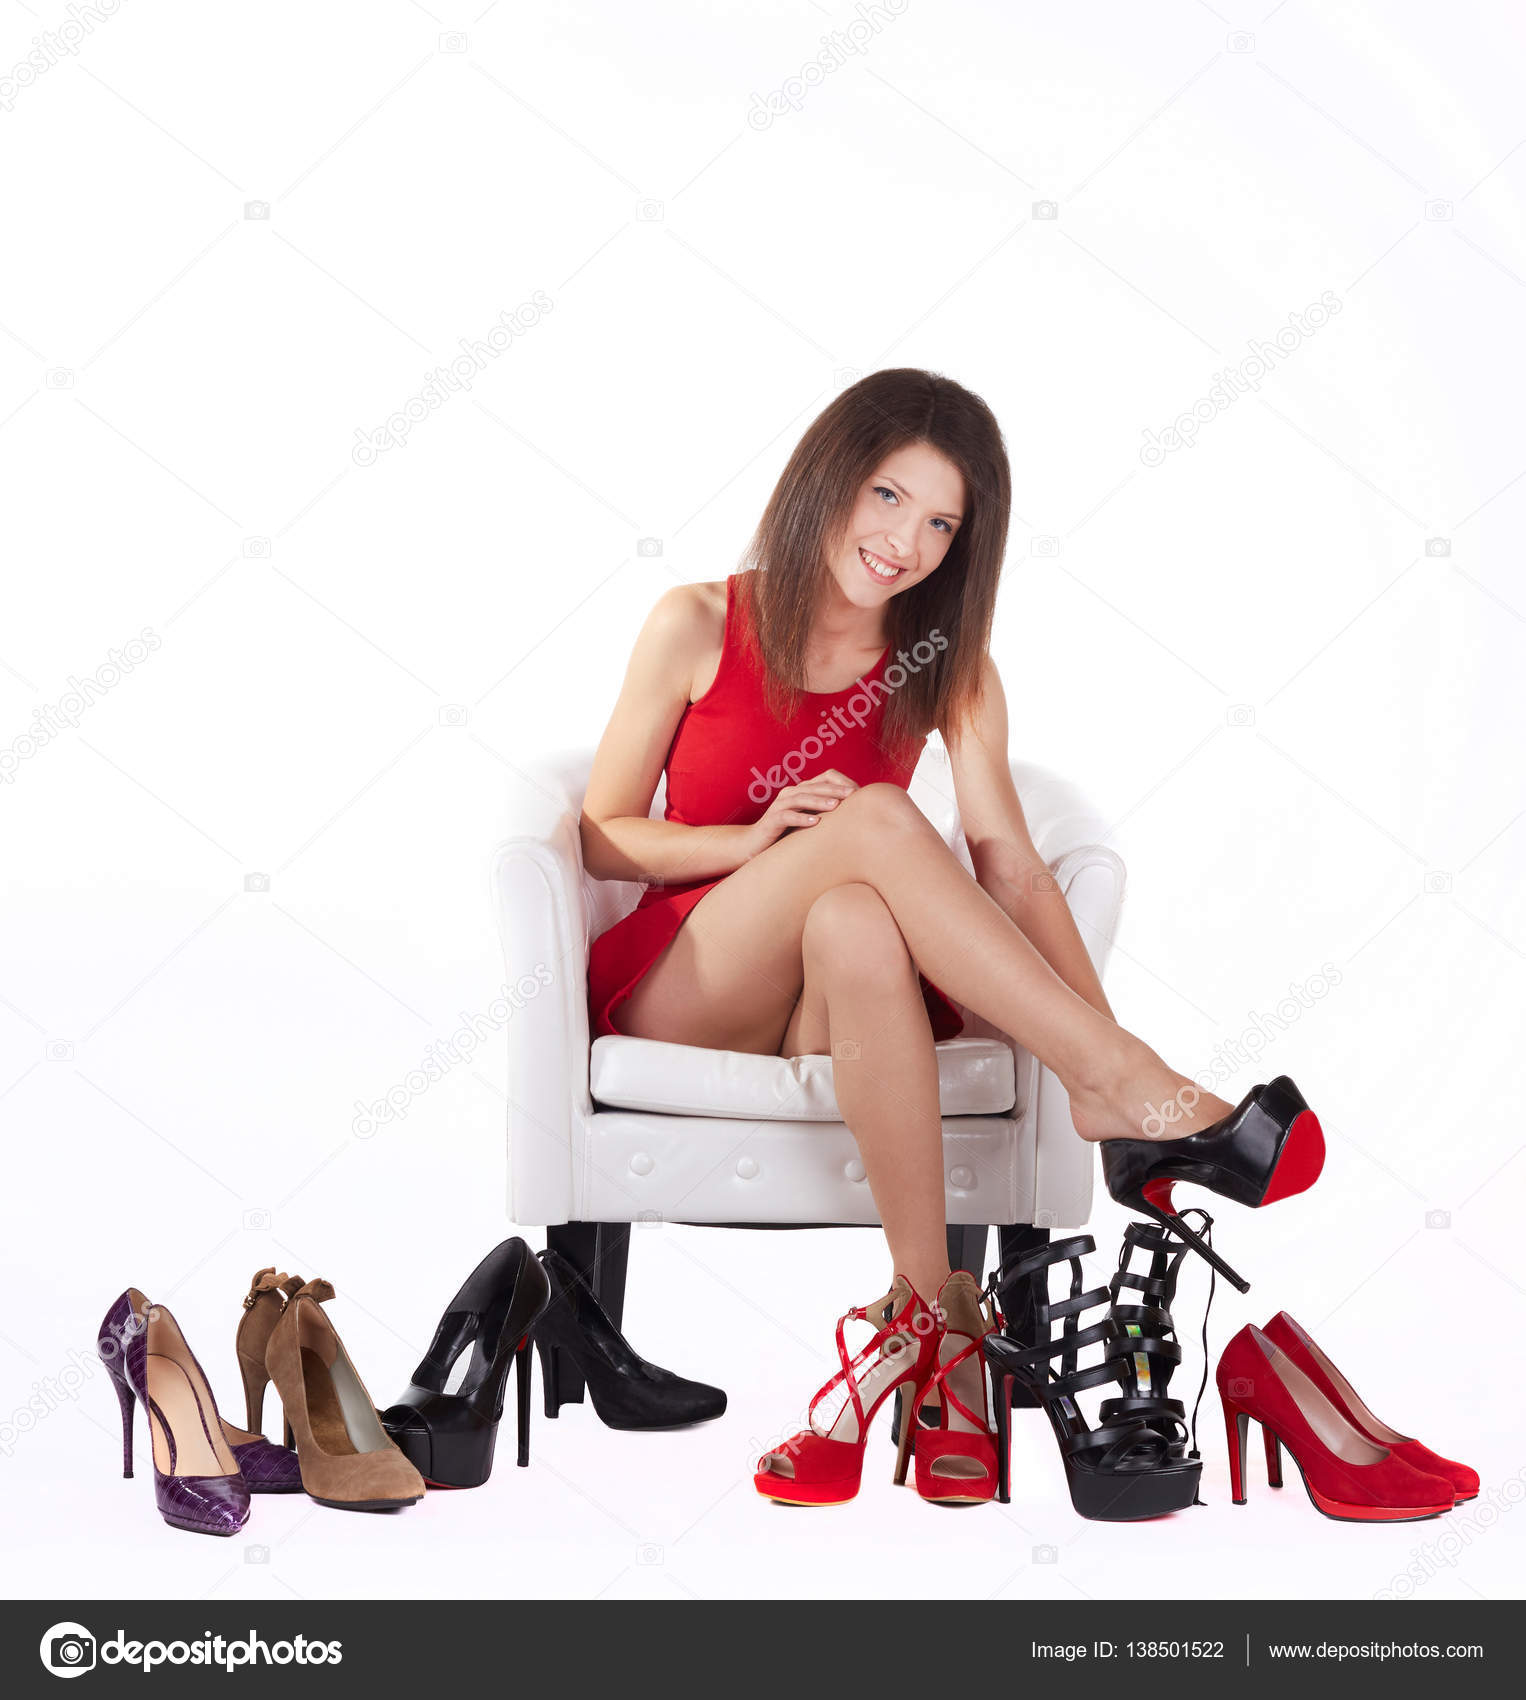 Woman Sitting On Chair And Trying On High Heeled Shoes U2014 Stock Photo